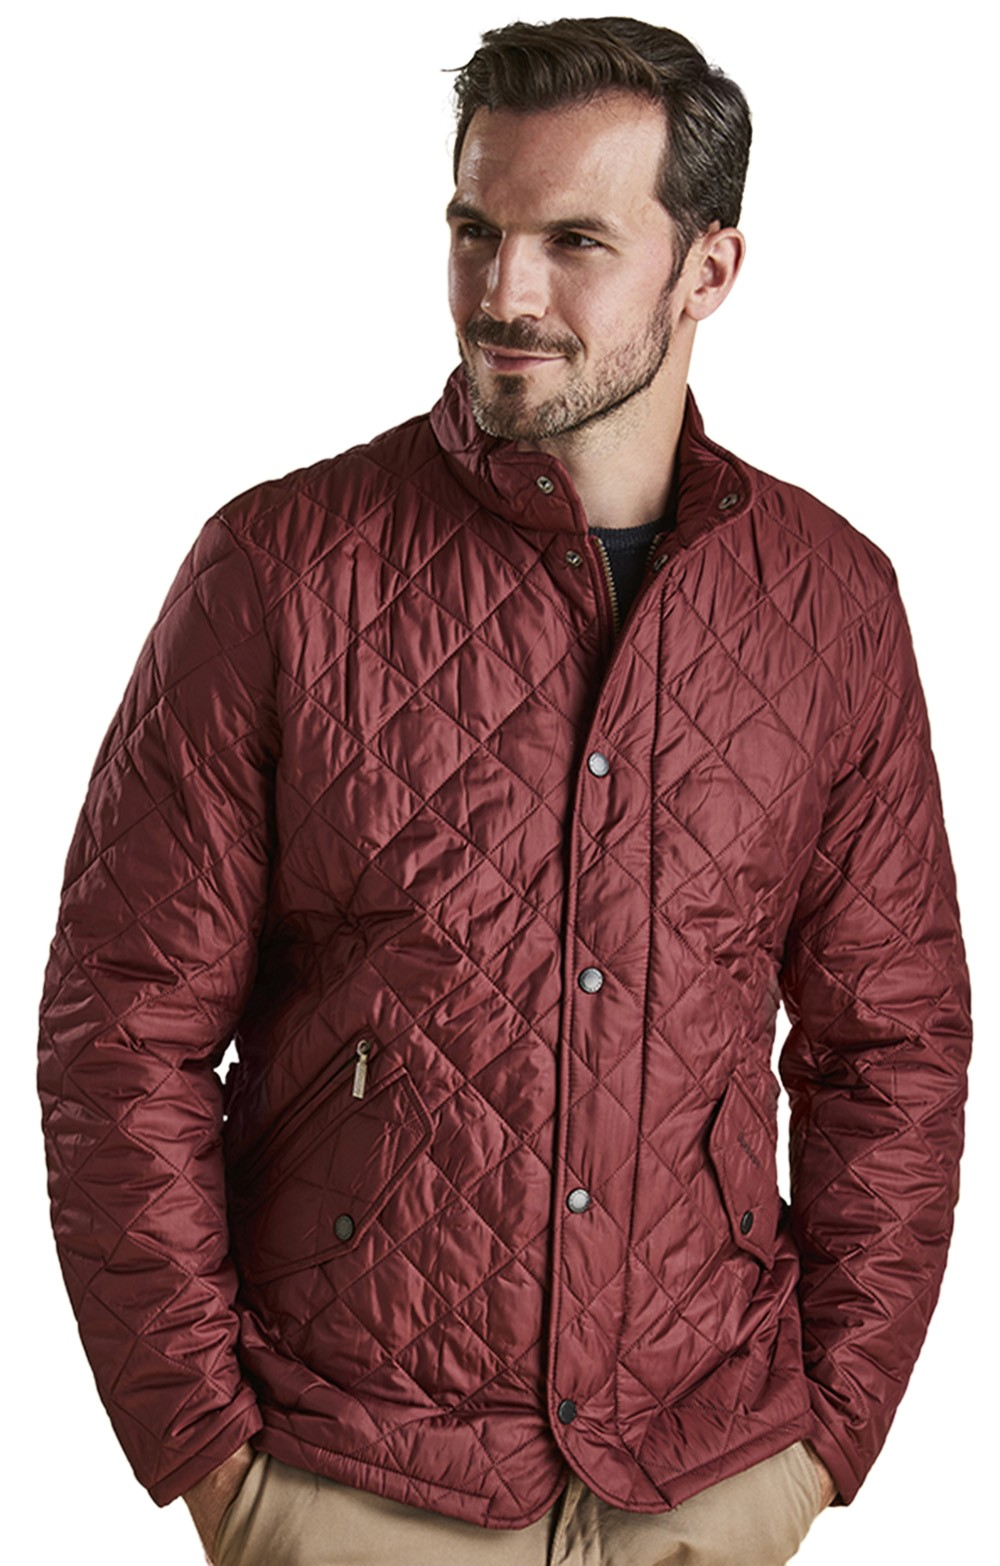 956afc1a74f86 Mens Barbour Flyweight Chelsea Quilted Jacket - House of Bruar